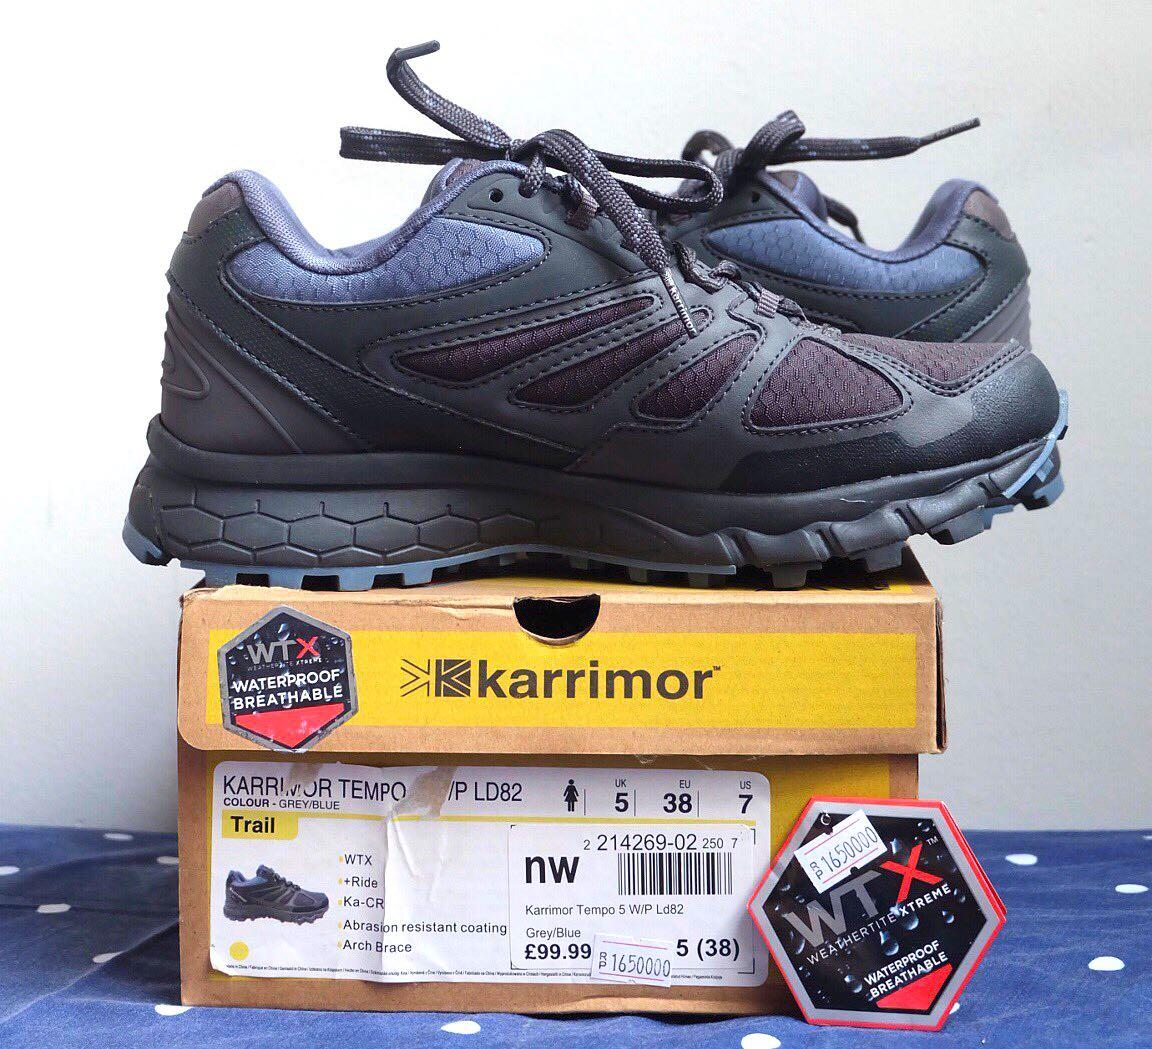 Karrimor Hiking/Trail Shoes for Woman